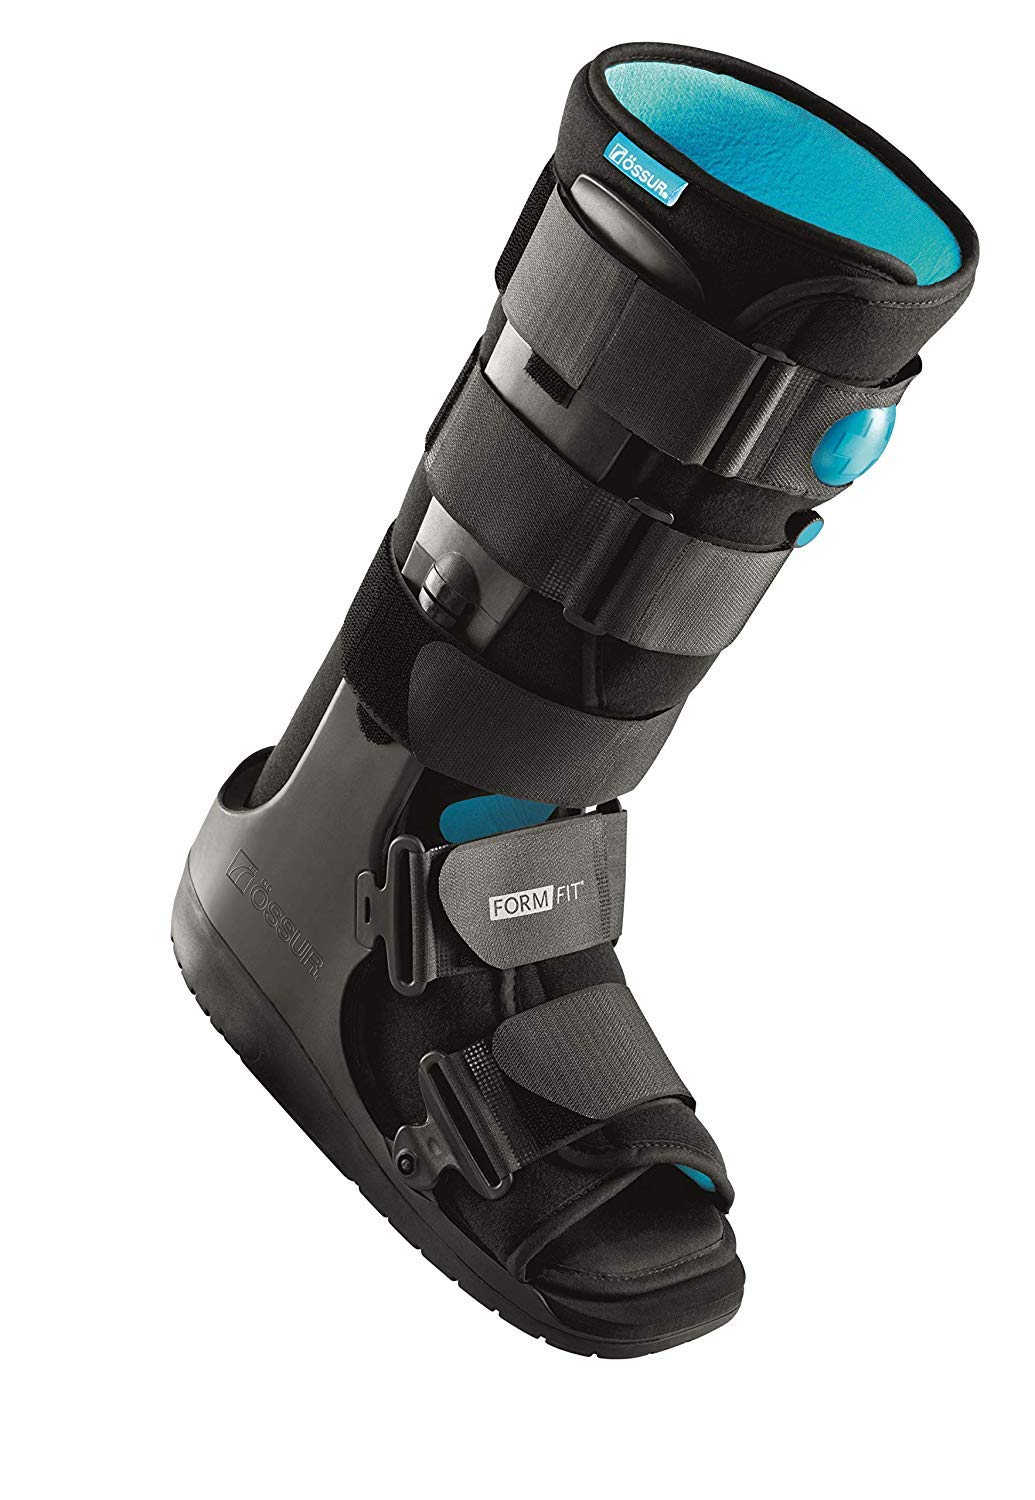 Ossur Formfit Walker with Air - Medical Grade Immobilization for Strains, Sprains & Stable Fractures with Patented Pneumatic Technology to Decrease Pain & Swelling (High Top, Medium)